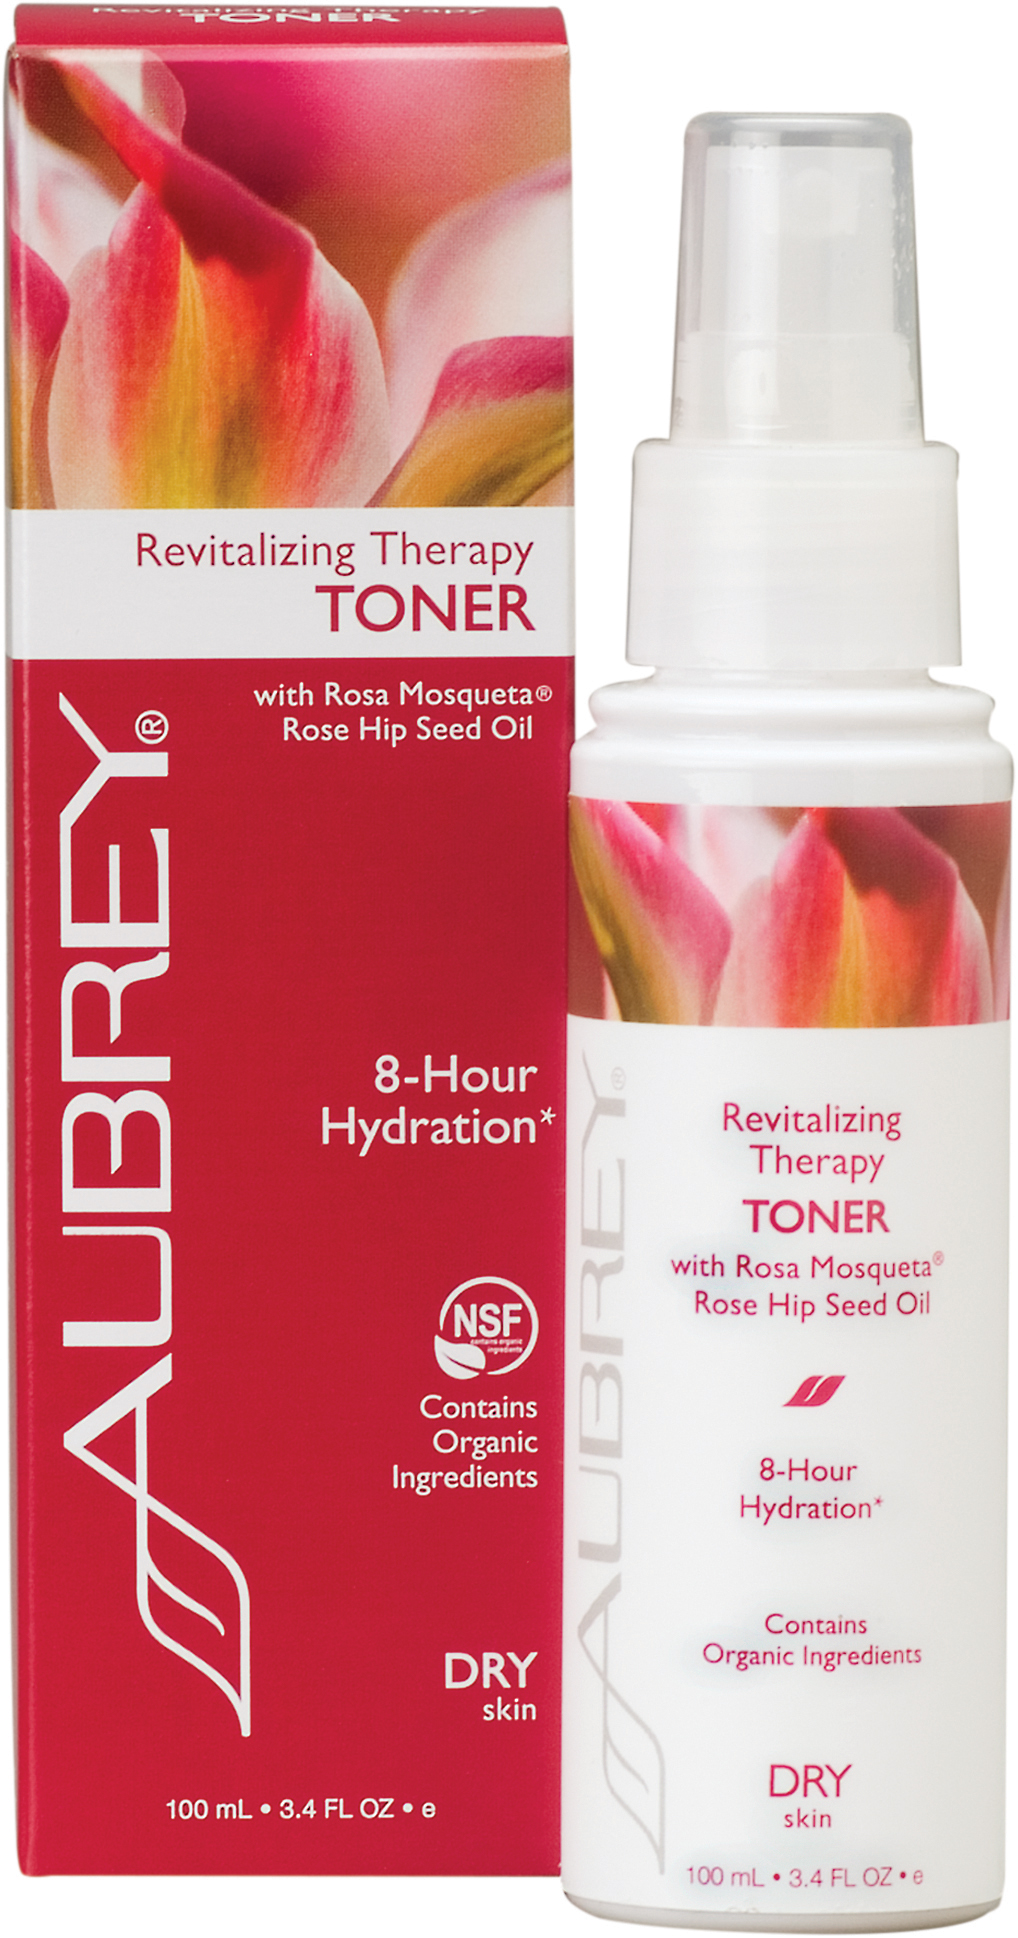 Aubrey-Revitalizing Therapy Tonik za suho kožo, 100 ml